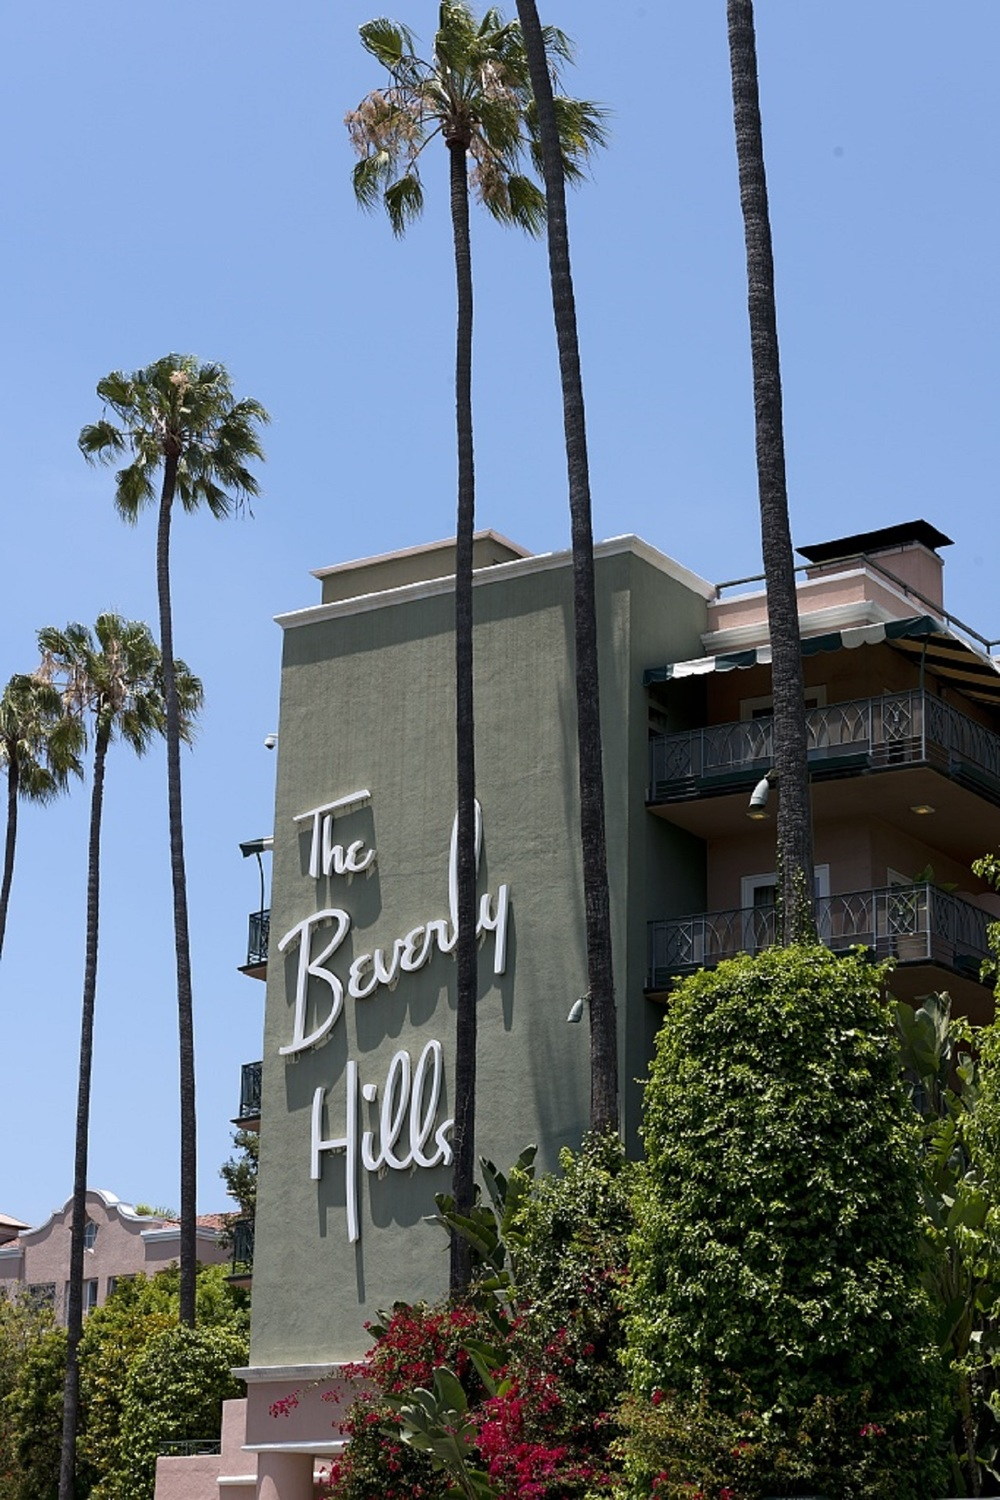 Beverly Hills is a city in California's Los Angeles County. Home to many Hollywood stars, it features the upscale shopping streets, world renowned hotels and plenty of entertainment.